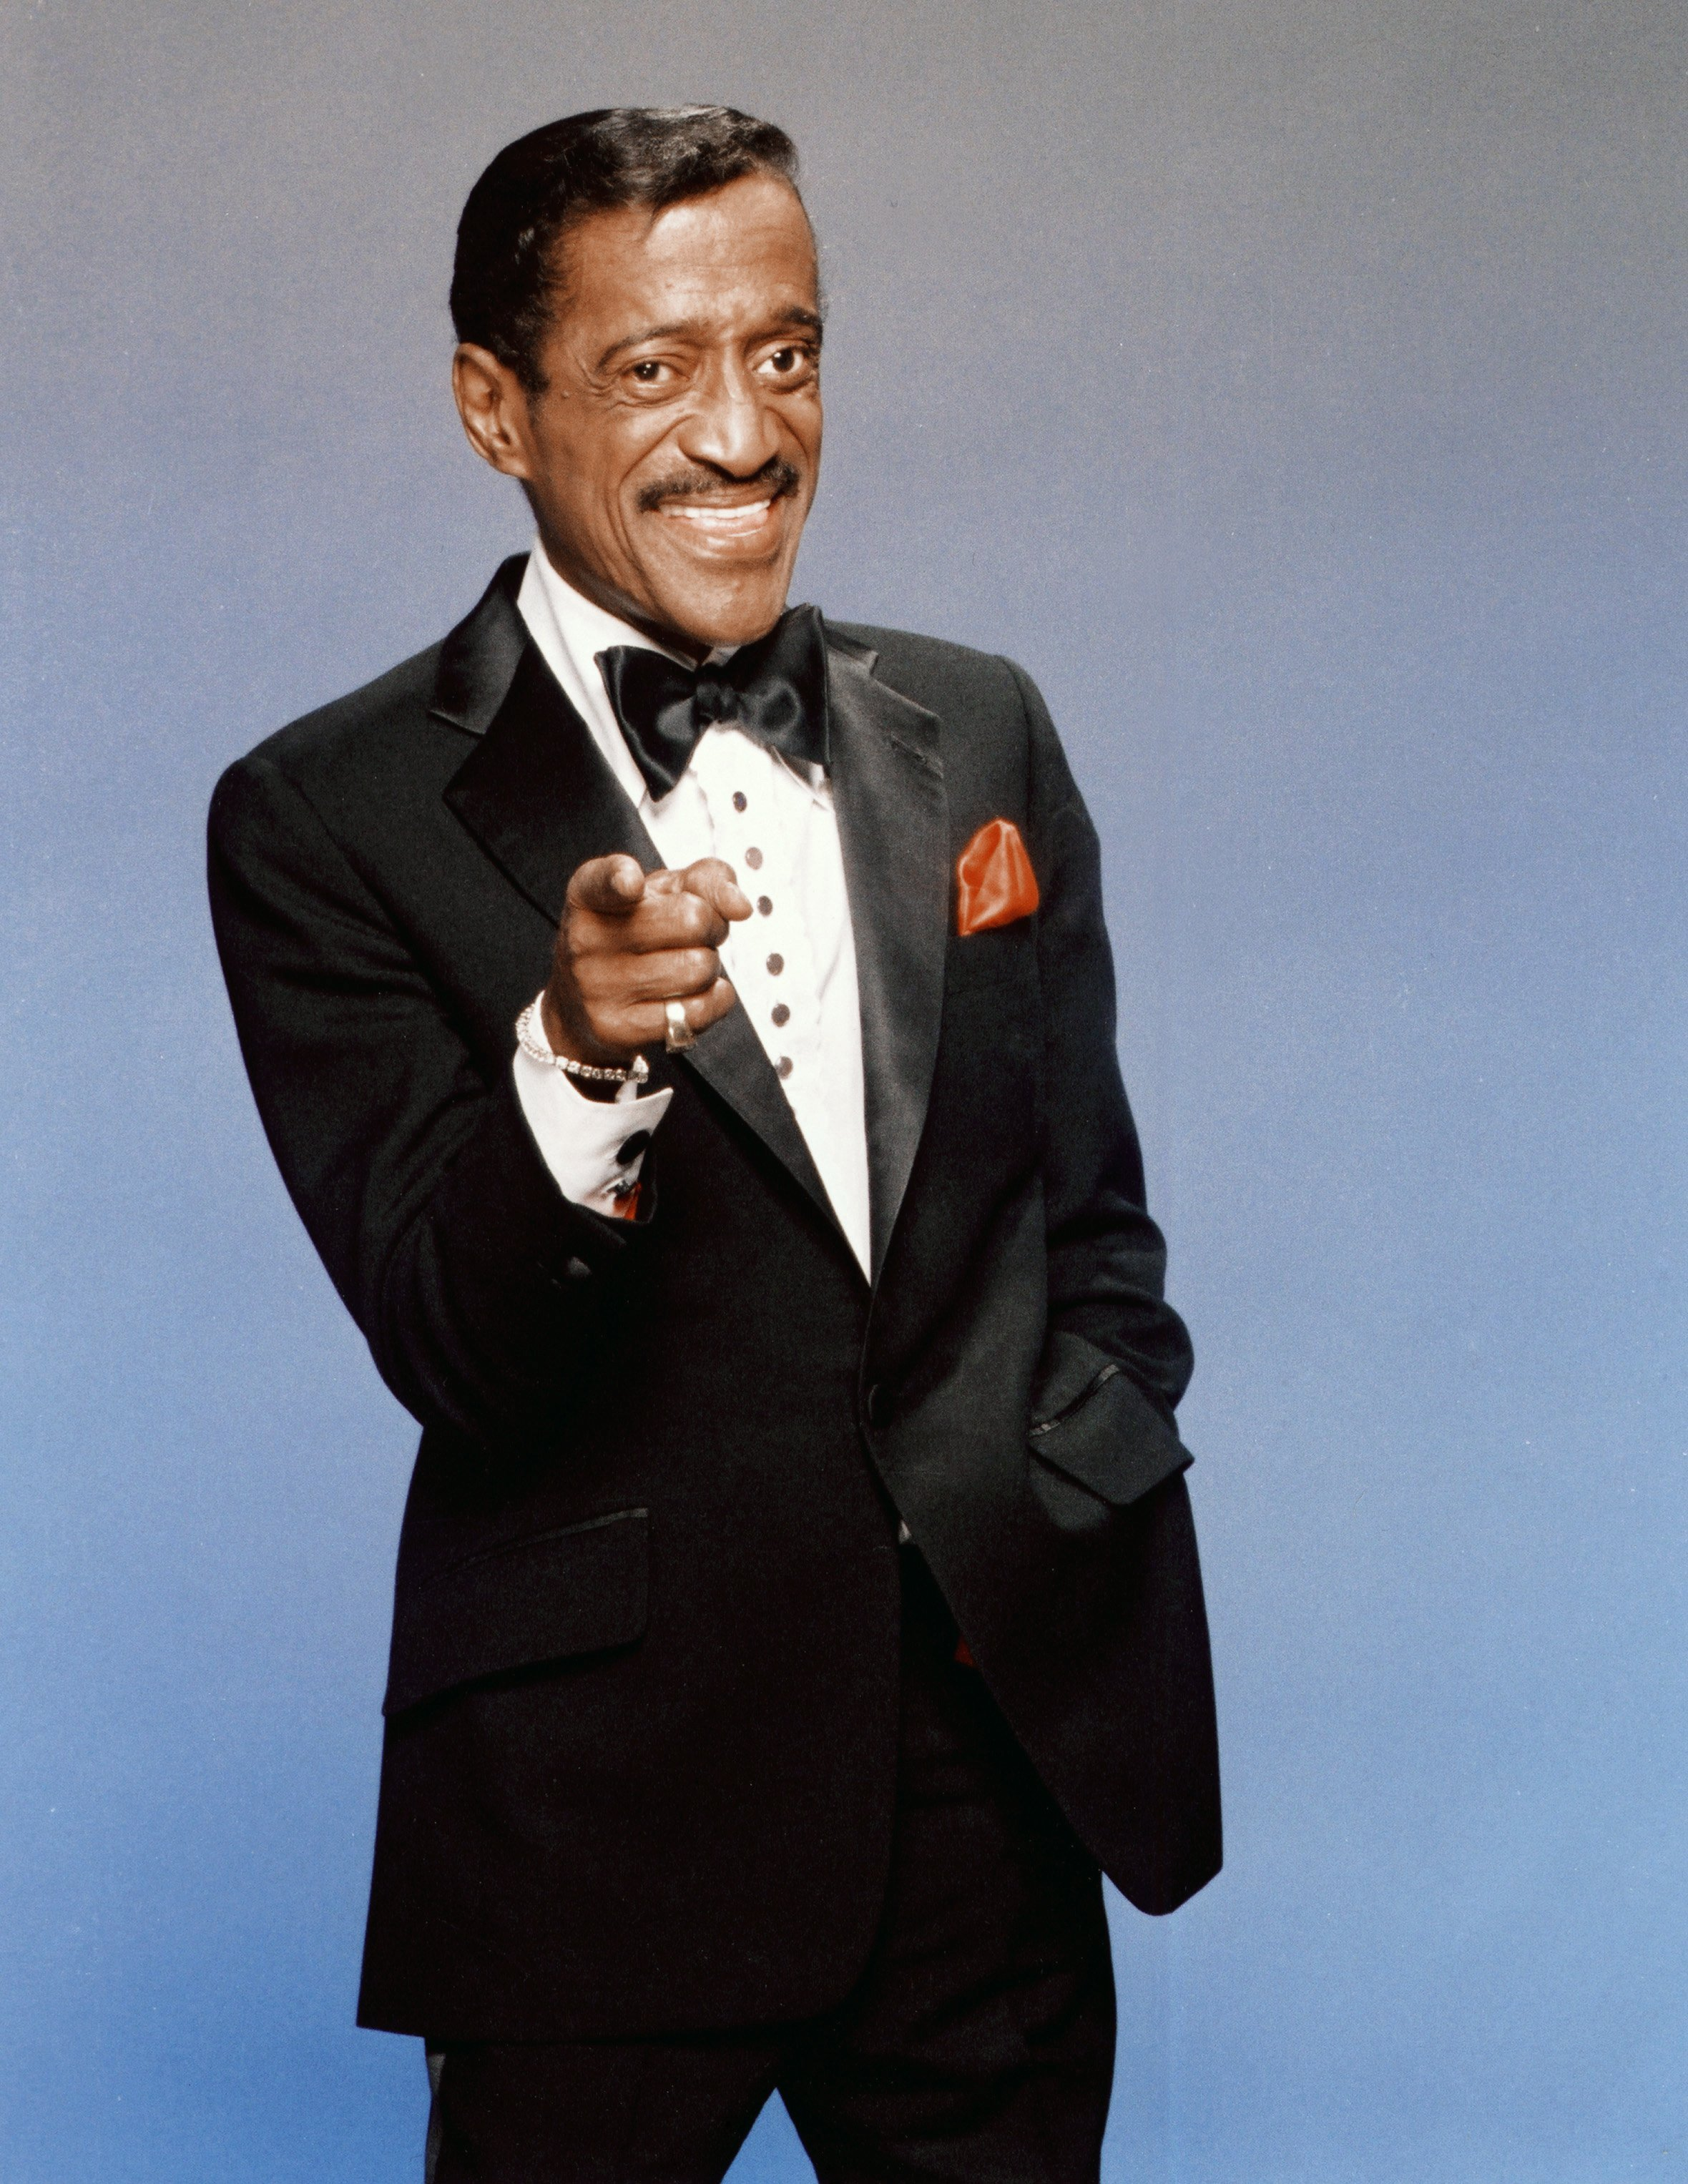 Actor Sammy Davis Jr. poses for a portrait in 1988 in Los Angeles, California. | Source: Getty Images